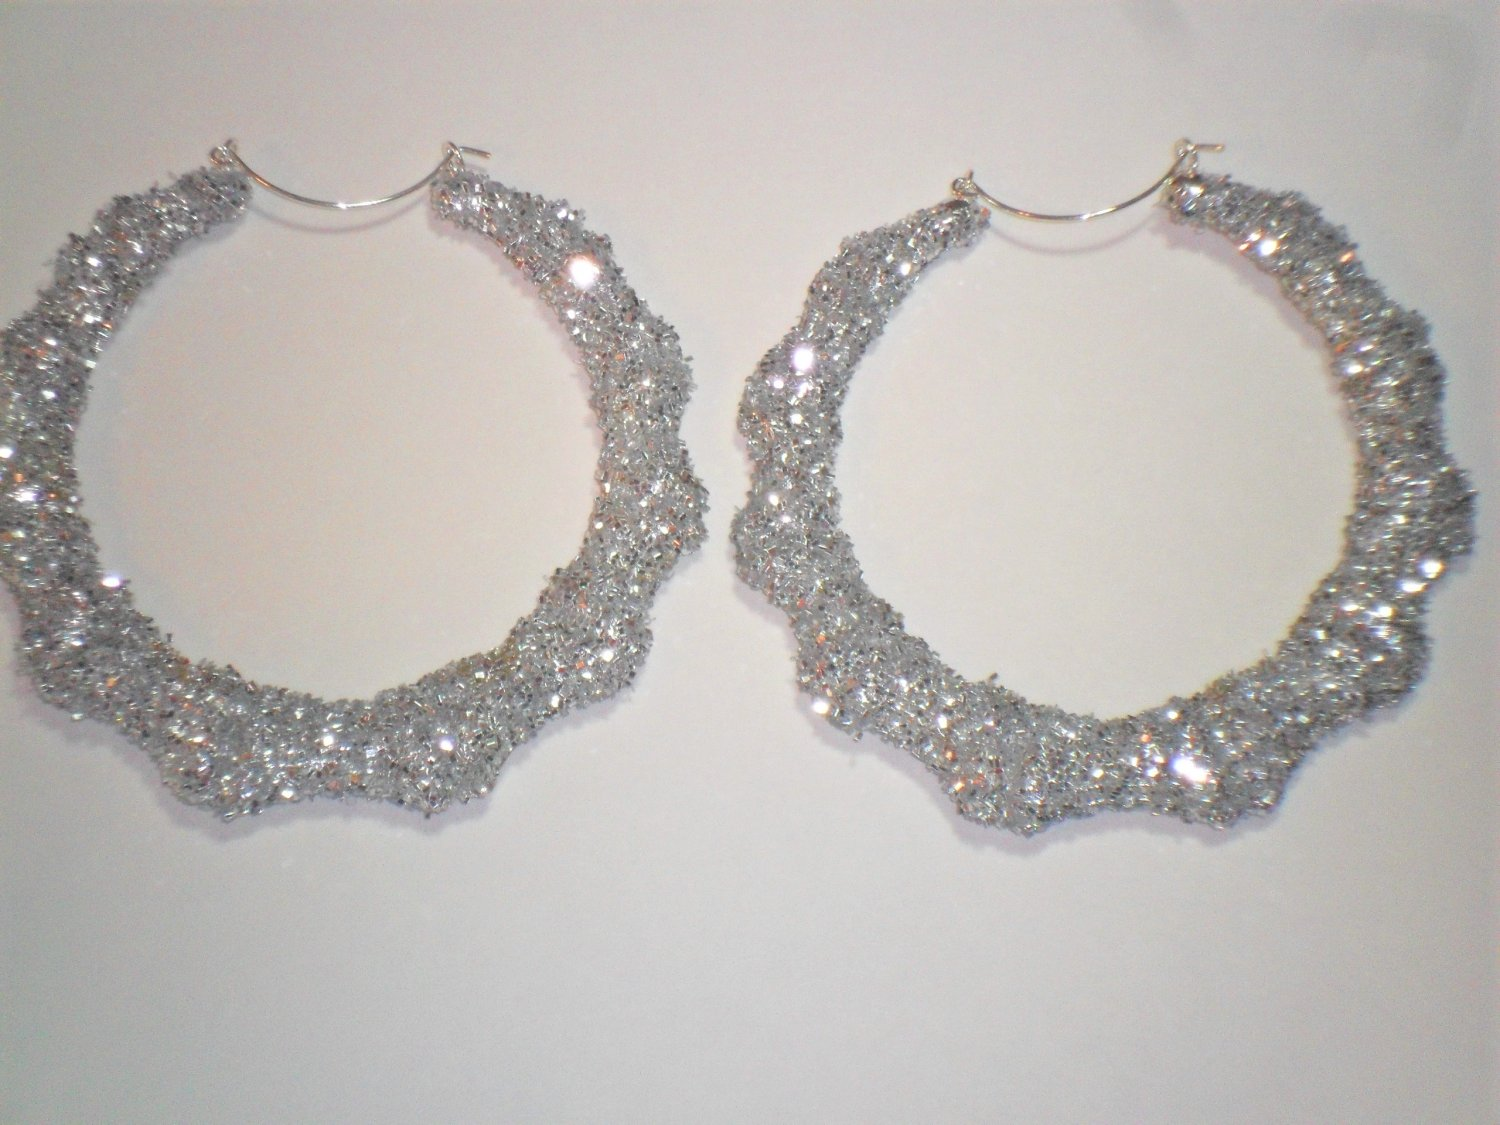 Bamboo Hoop Bling Bling Earrings Silver Buy 1 Get 1 Free Mix or Match